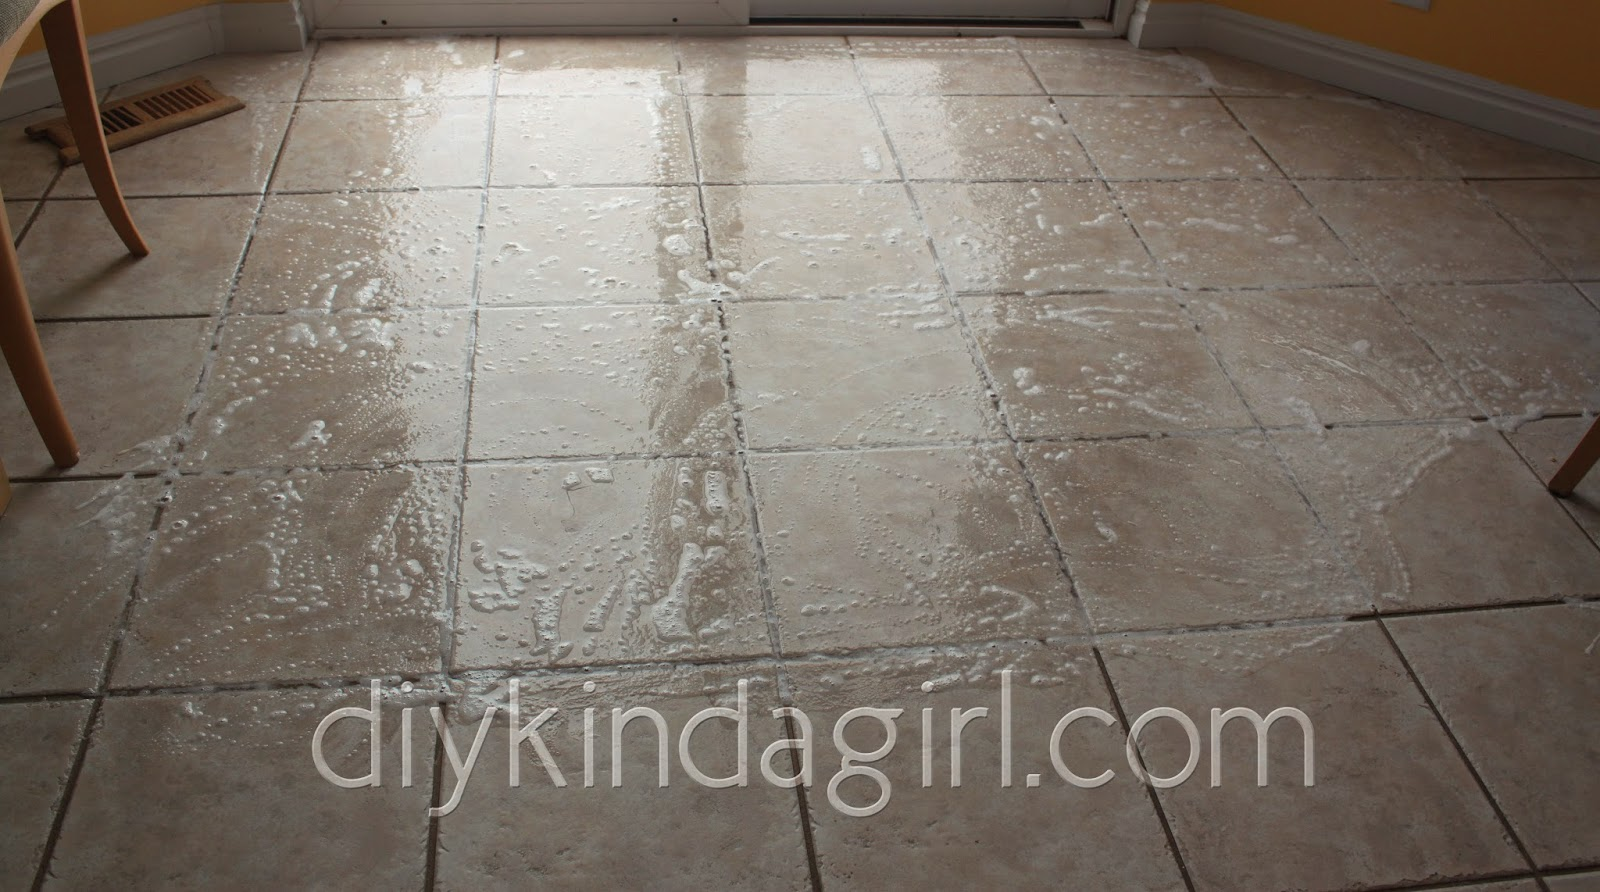 Diy Kinda Girl Diy Household Tip Cleaning Grout Oxiclean Vs Woolite